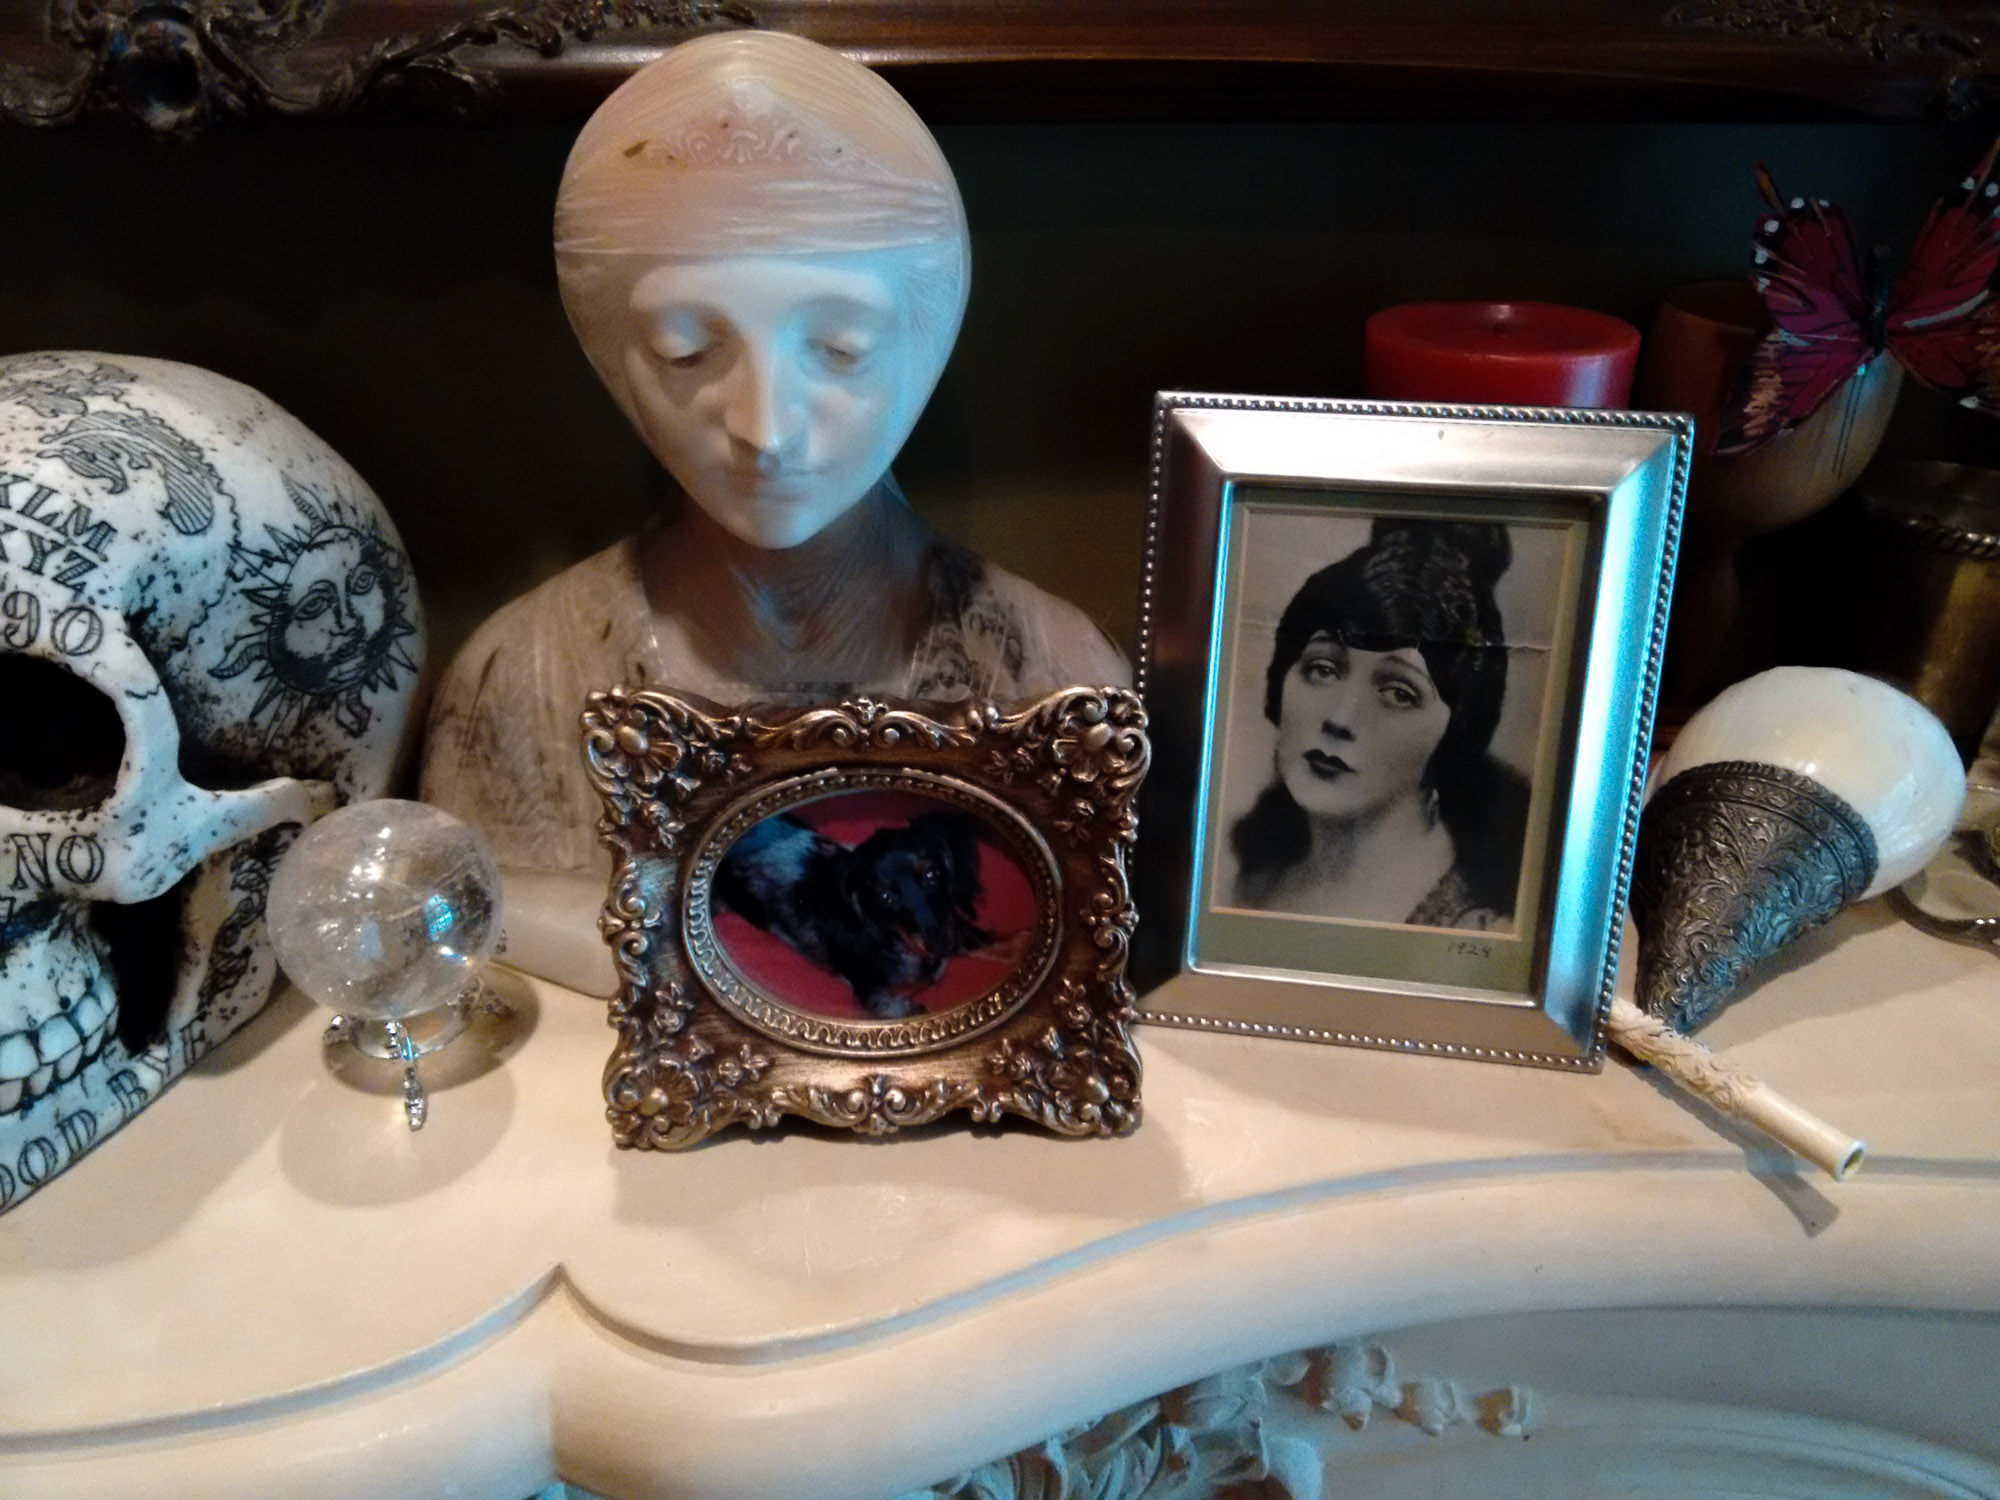 Framed photo of Patti's dog, surrounded by psychic ephemera.